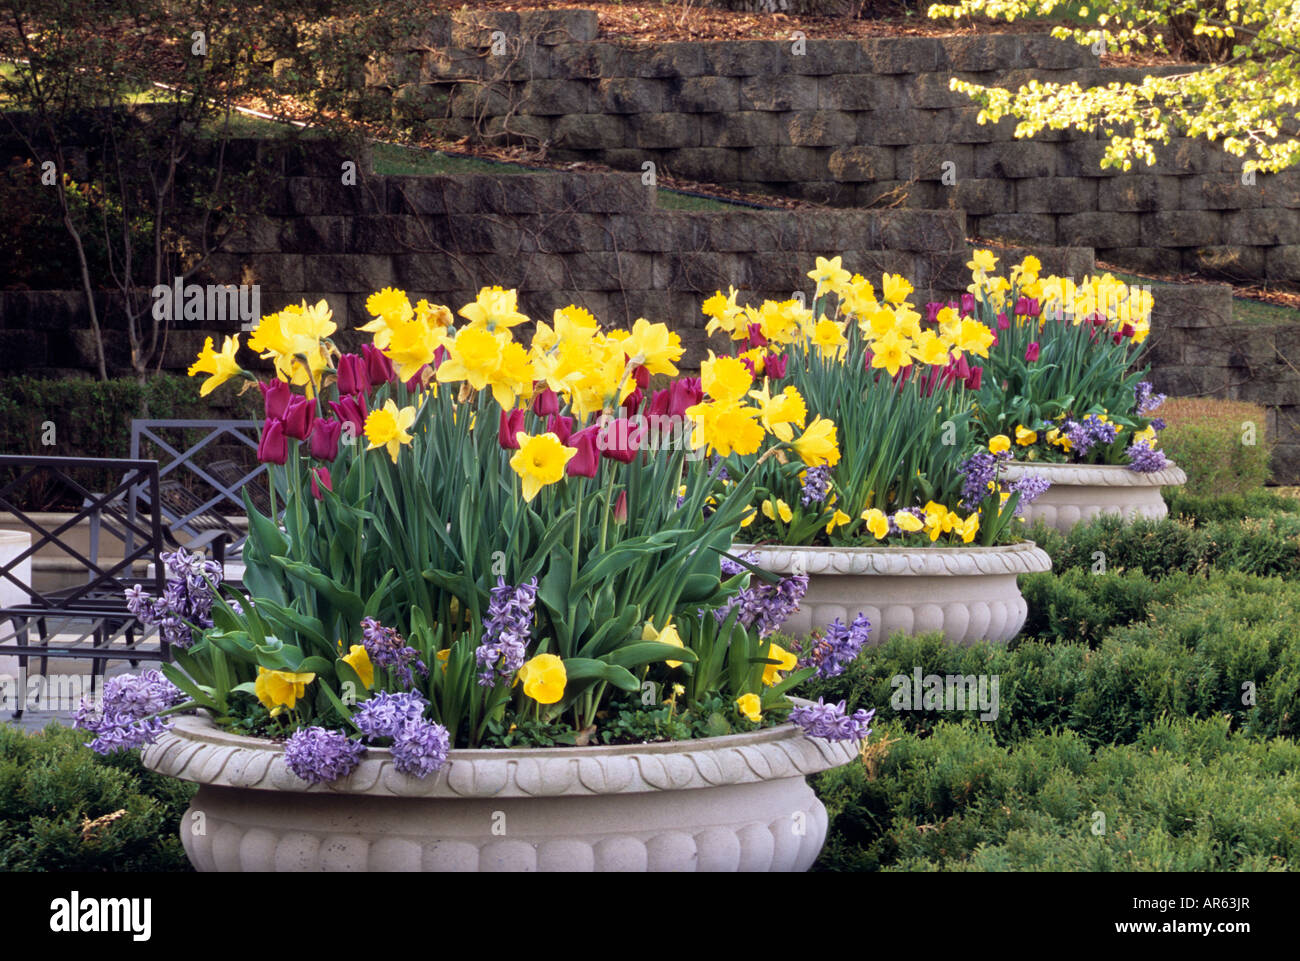 Pots of daffodils tulips pansies and grape hyacinths add spring stock photo royalty free - Planting hyacinths pots ...